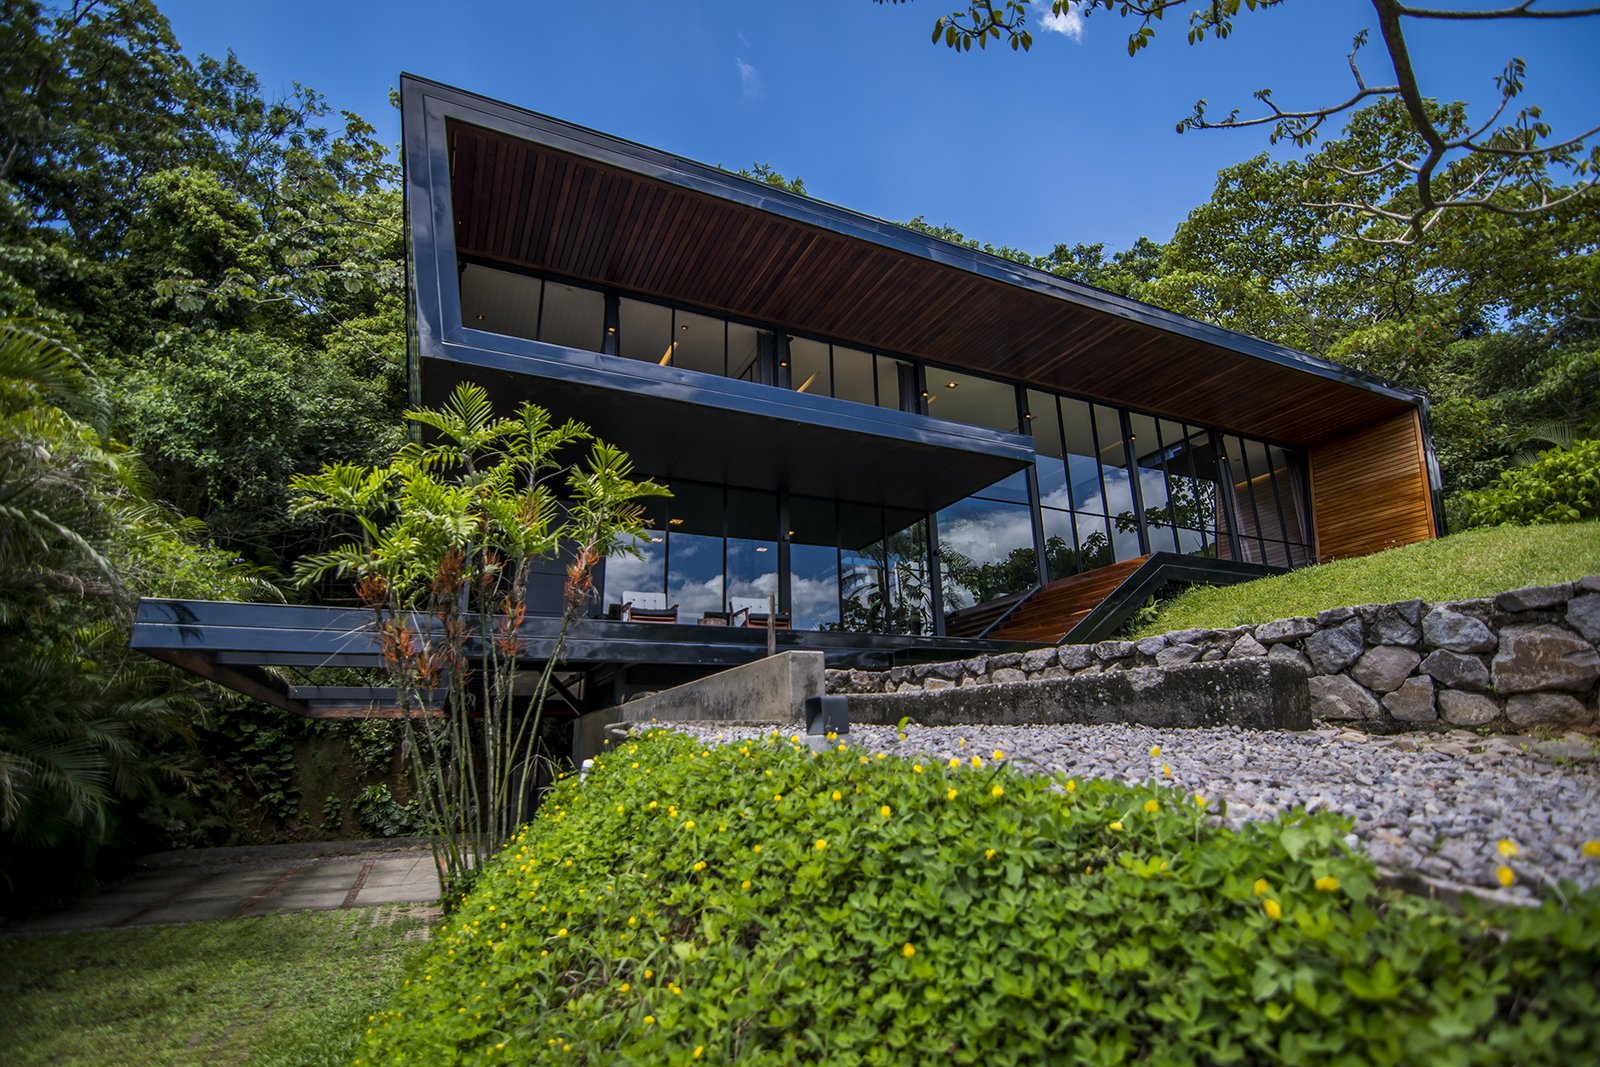 Exterior, Flat RoofLine, and House Building Type  A Harmonious Forest Residence in Costa Rica Asks $1.05M